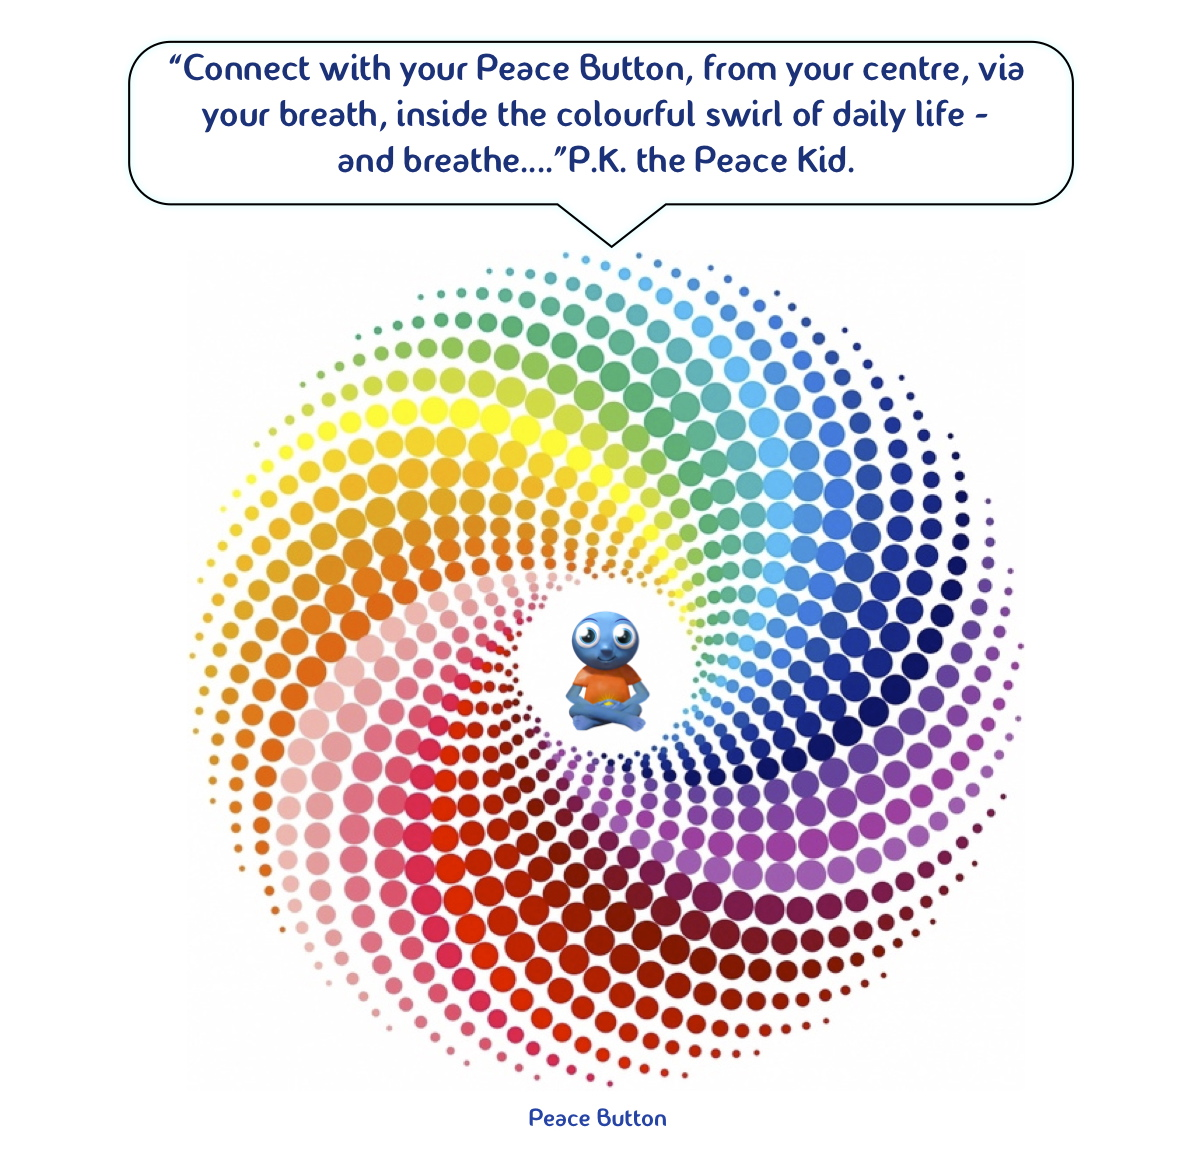 Colourful swirl of life